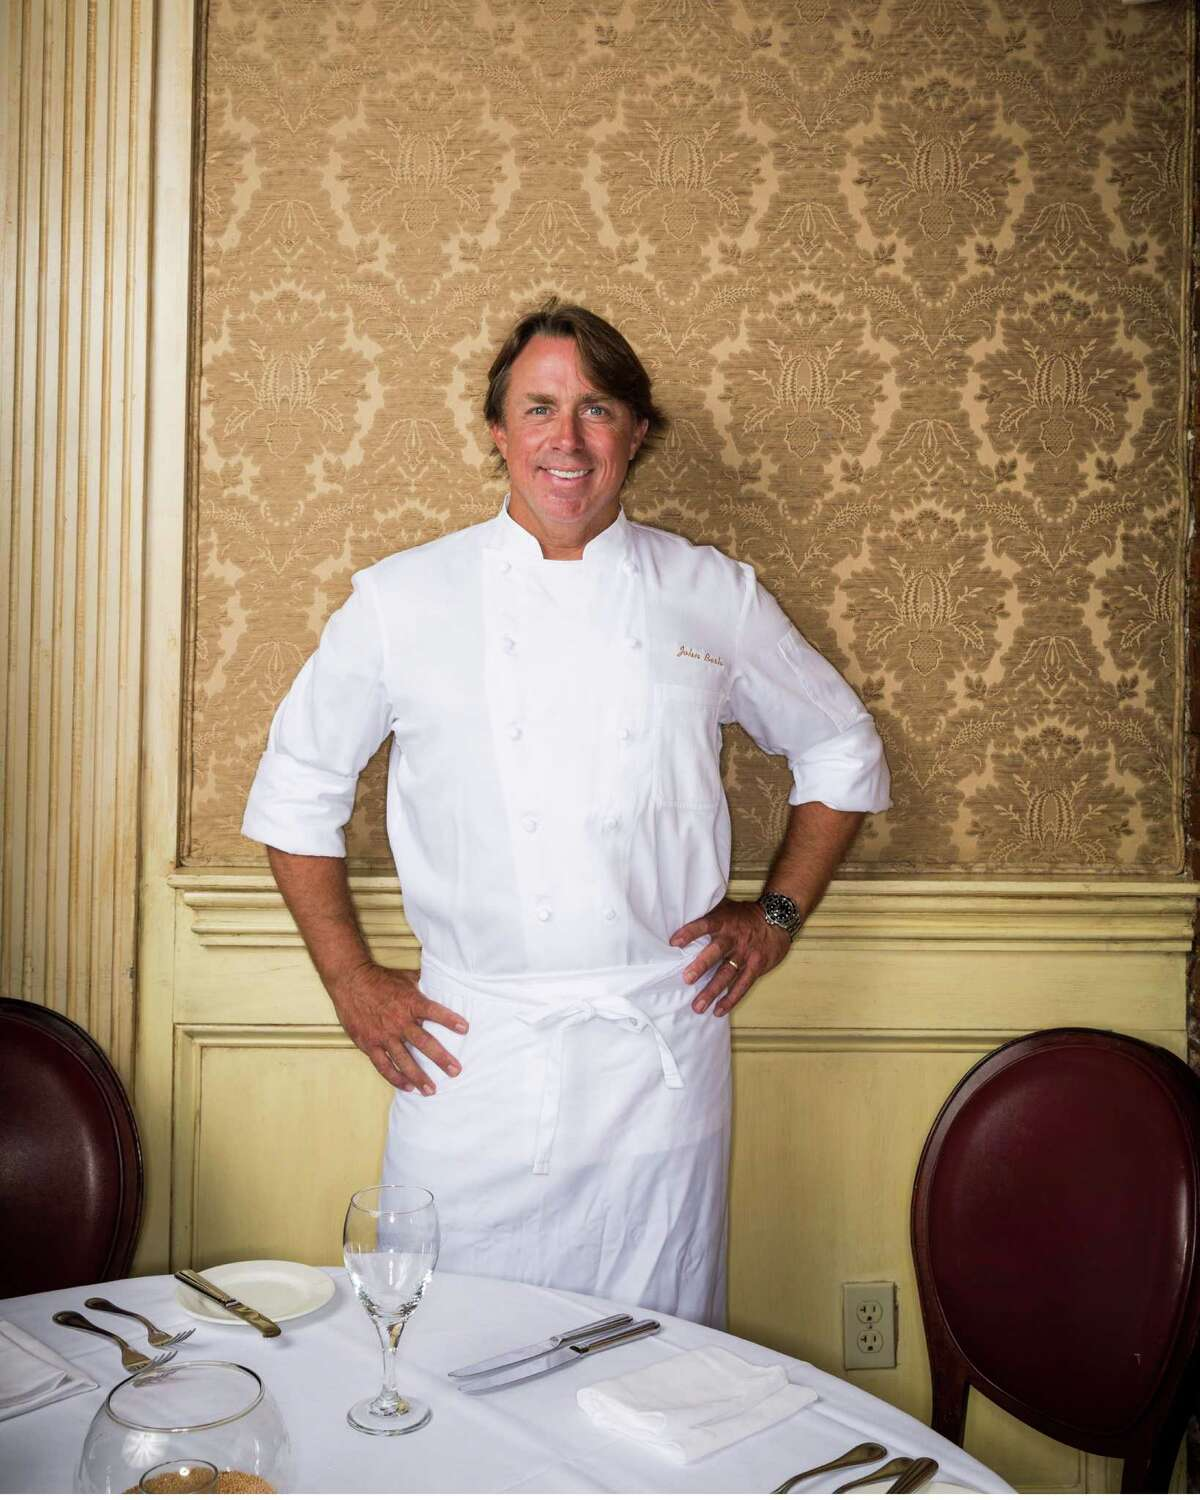 Chef John Besh poses for a portrait at Restaurant August in New Orleans.